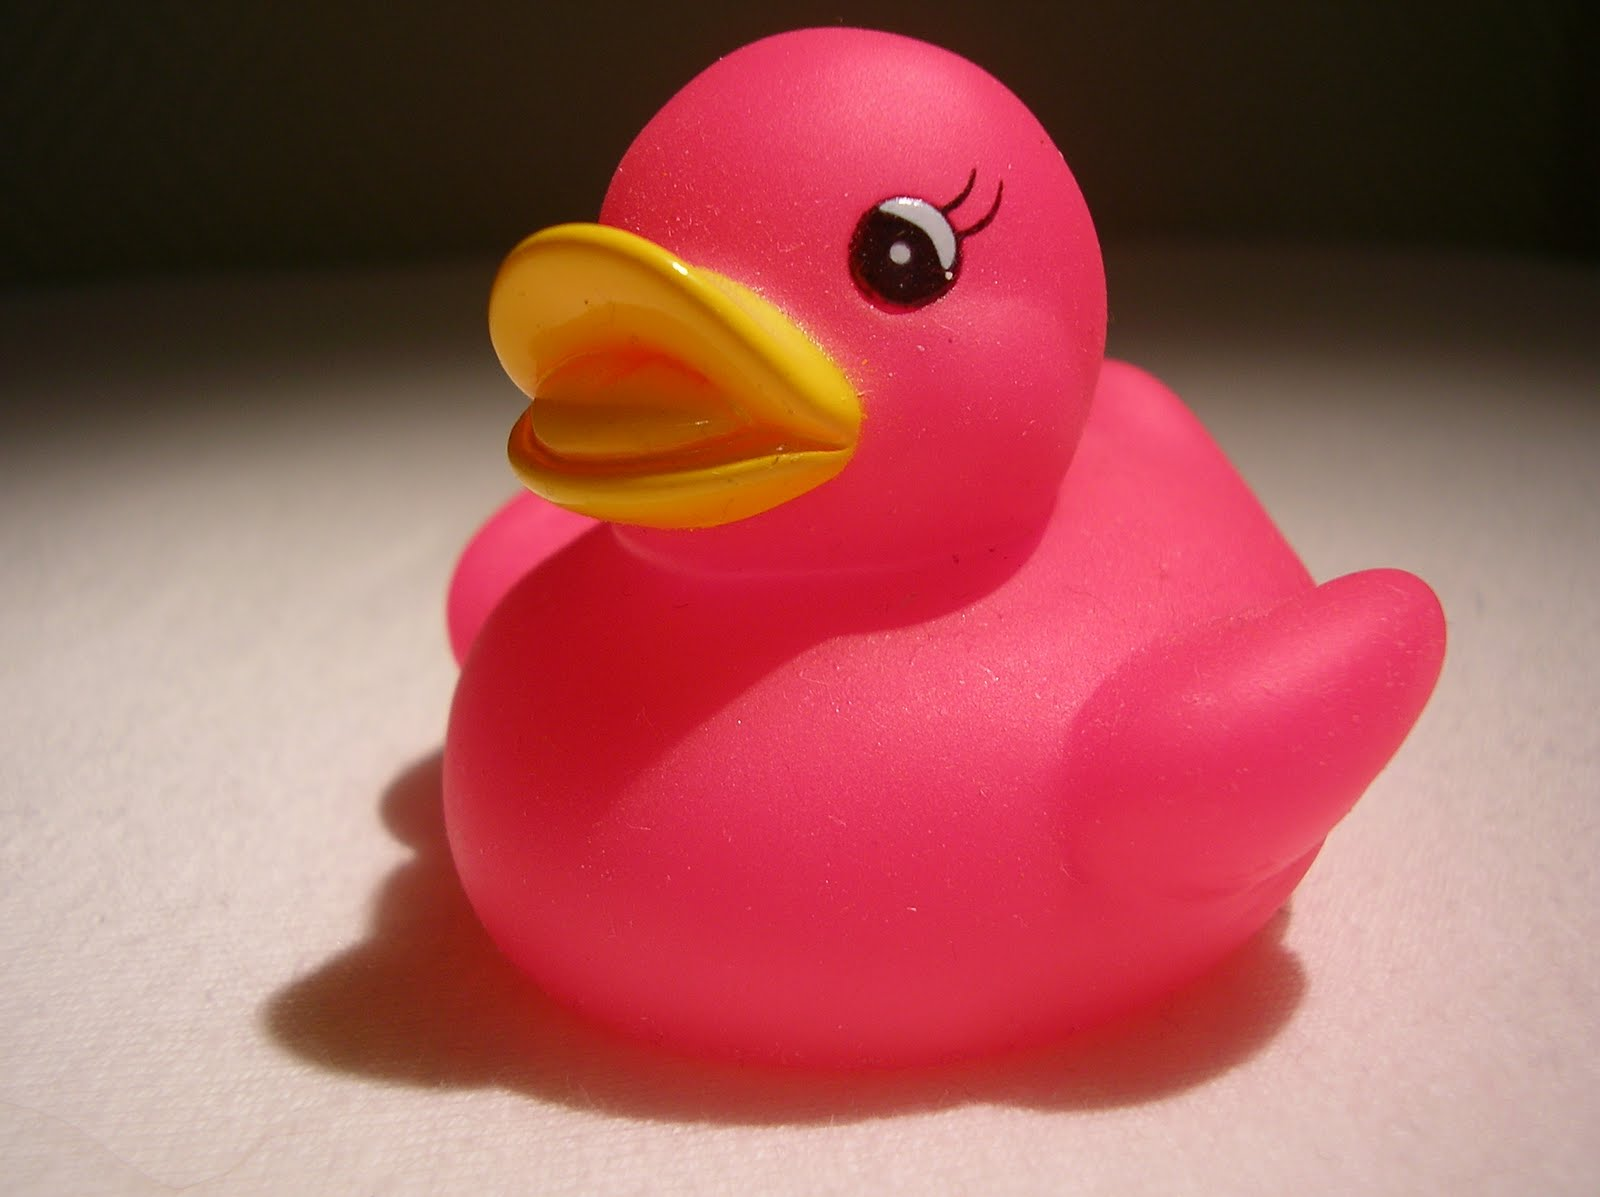 Tine S Rubber Duck Collection Small And Pink